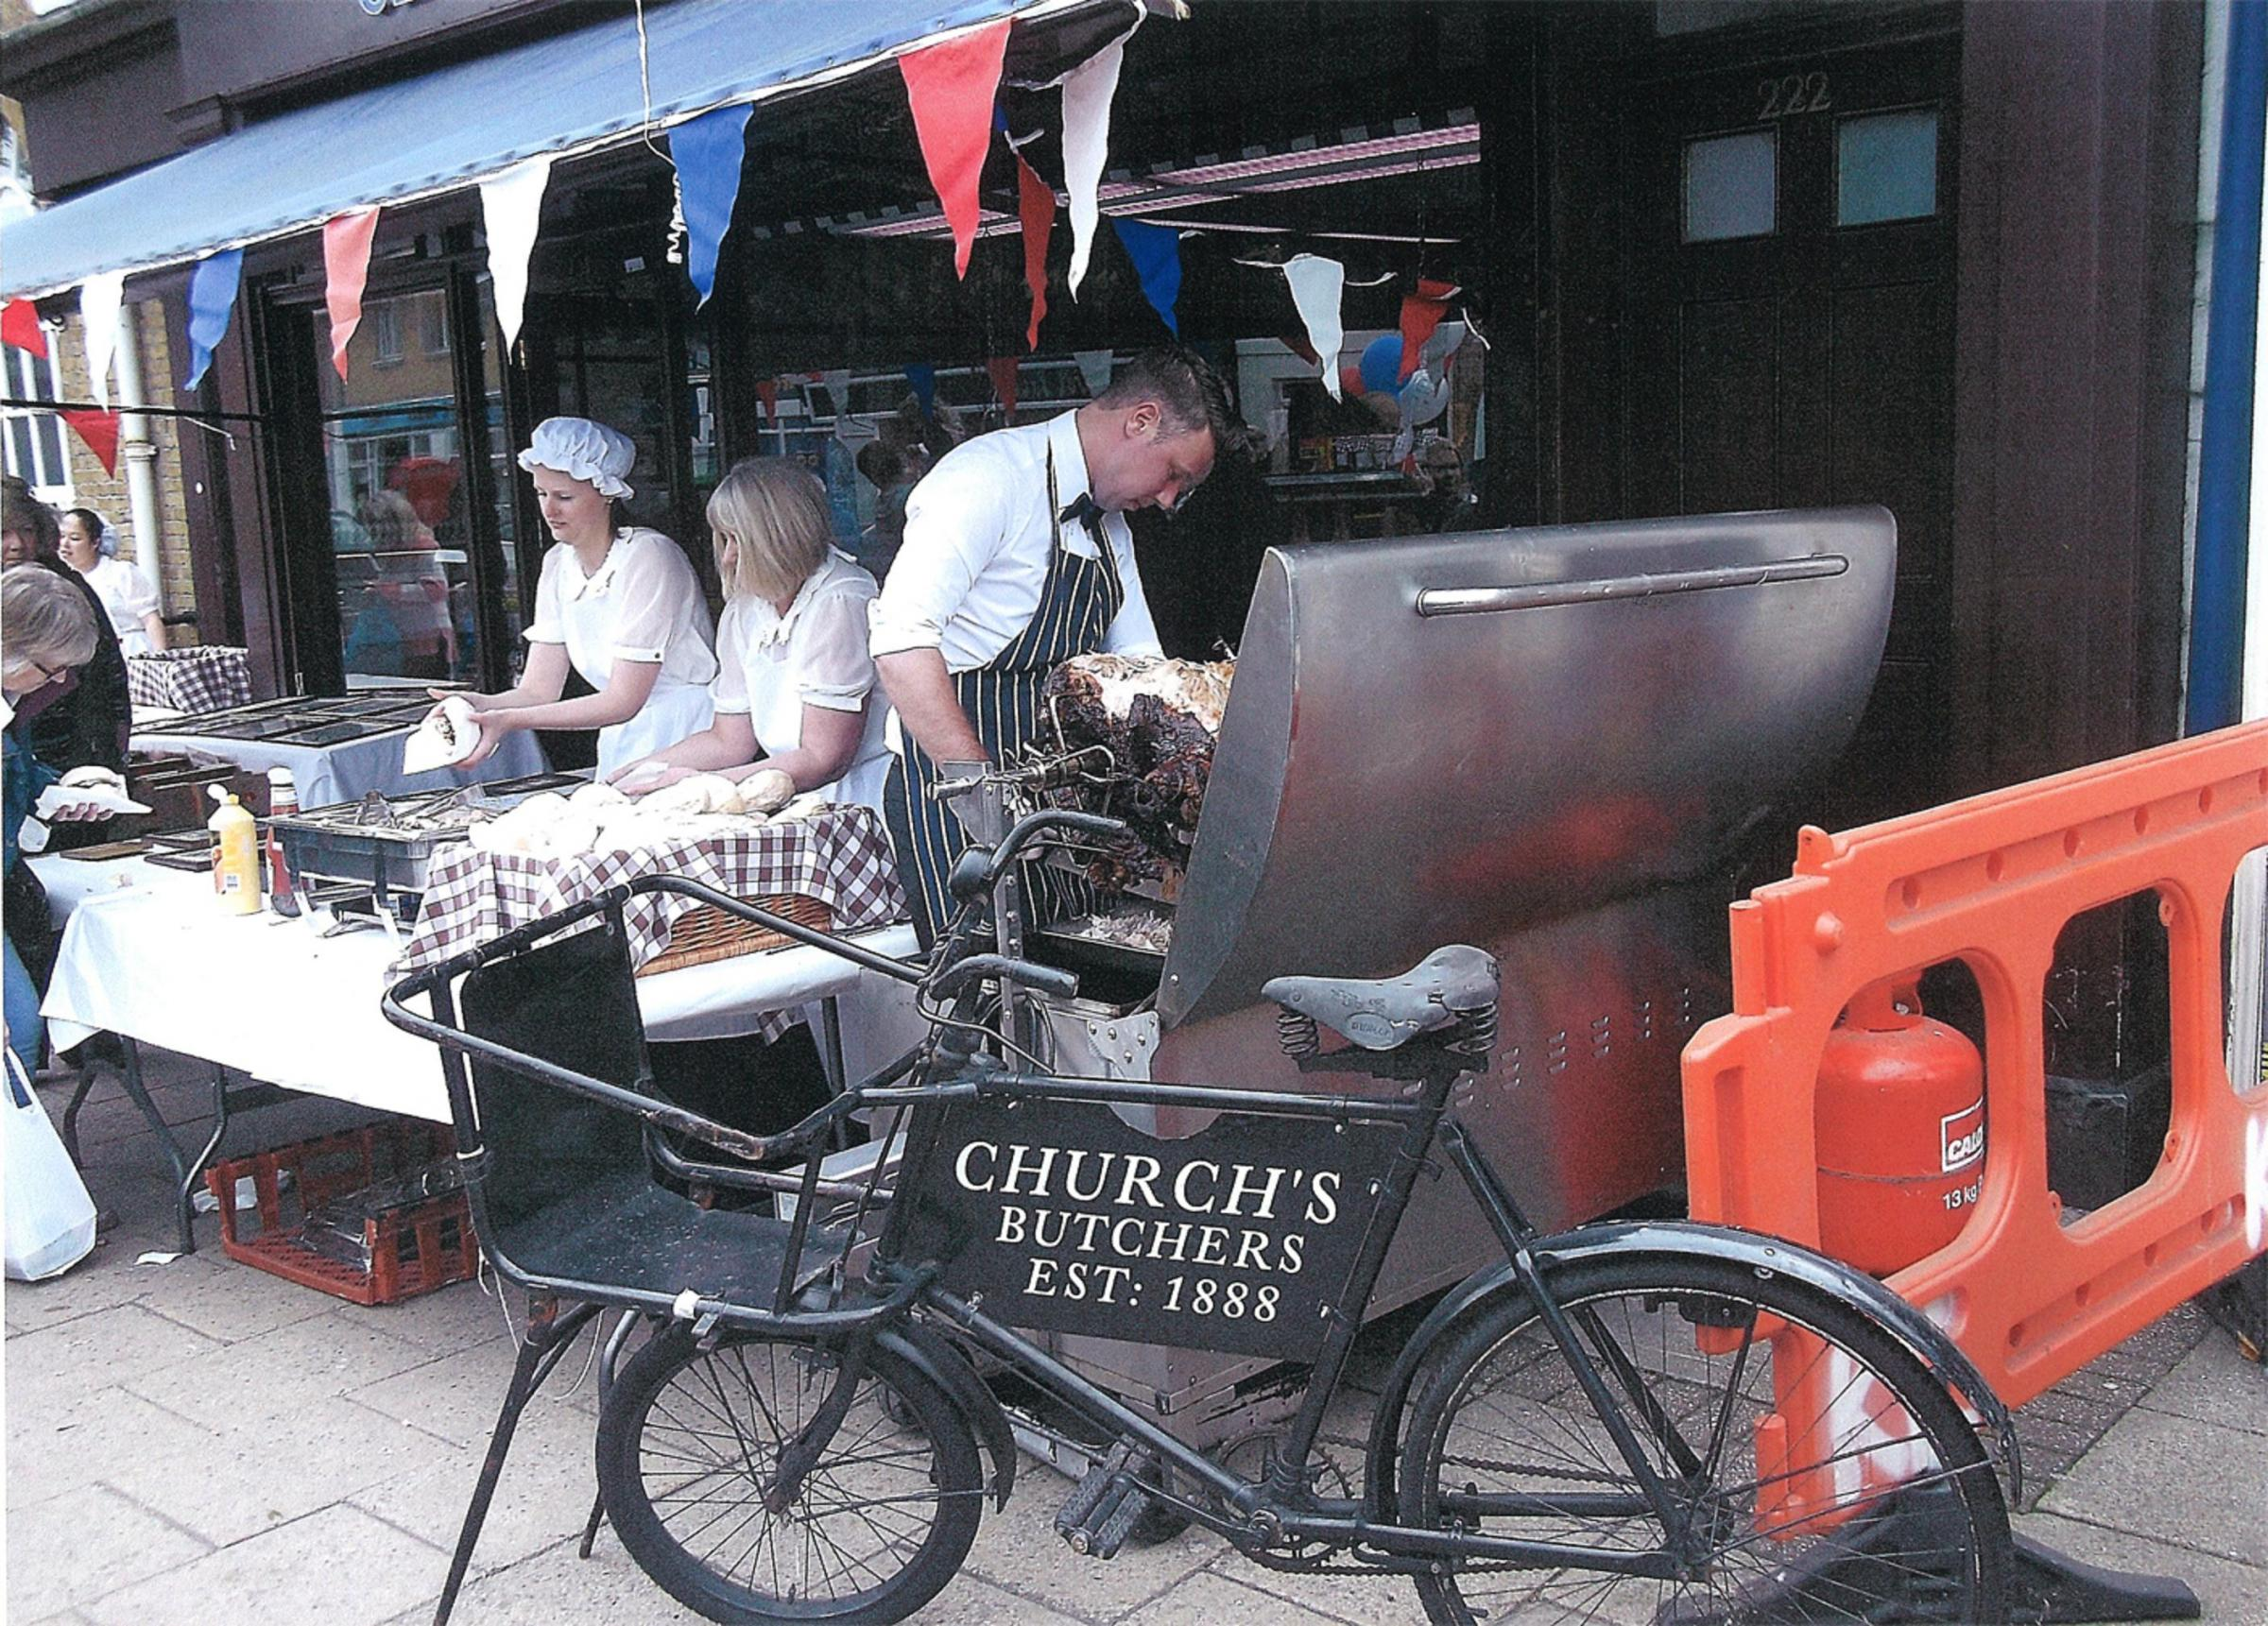 The vintage bicycle outside Church's butchers